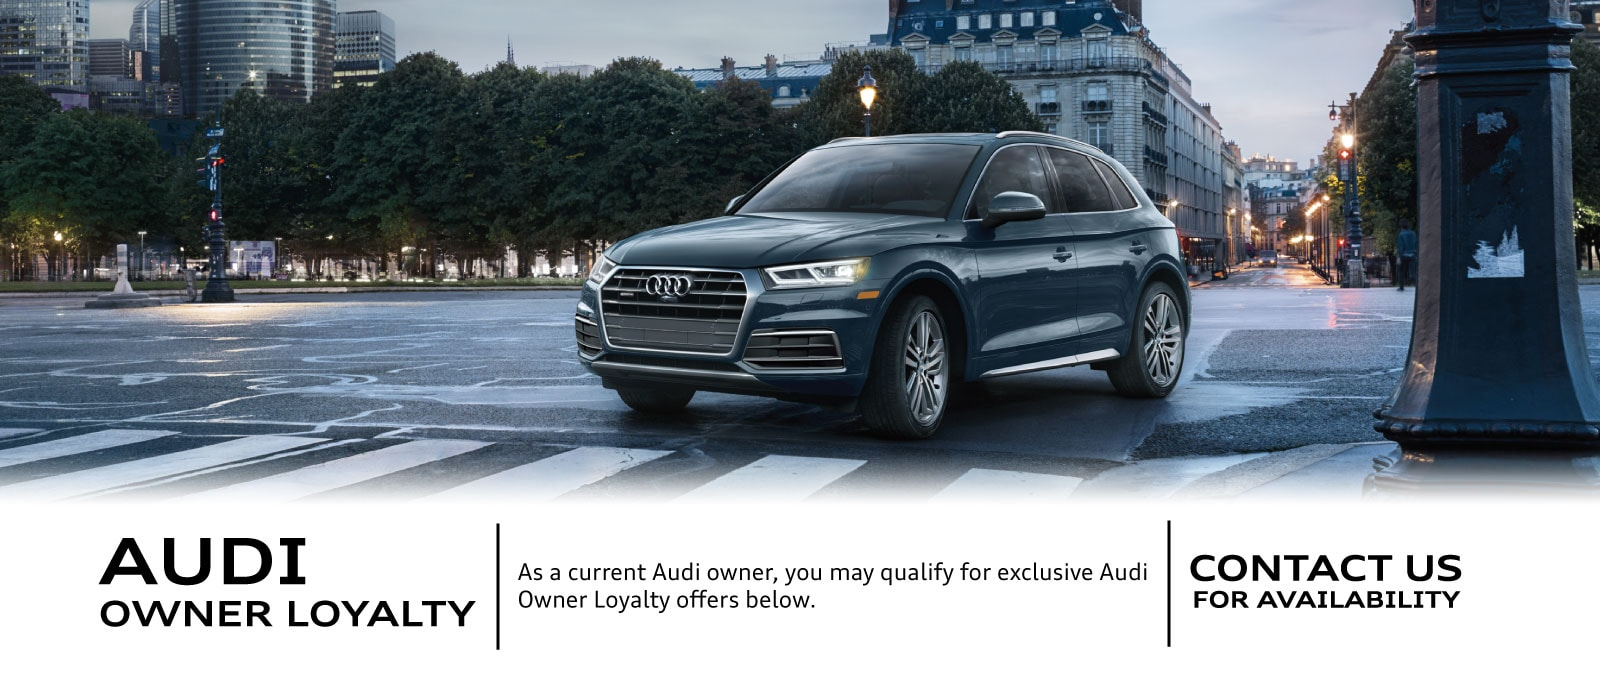 Audi Toms River New Audi Dealership In Toms River NJ - Audi loyalty